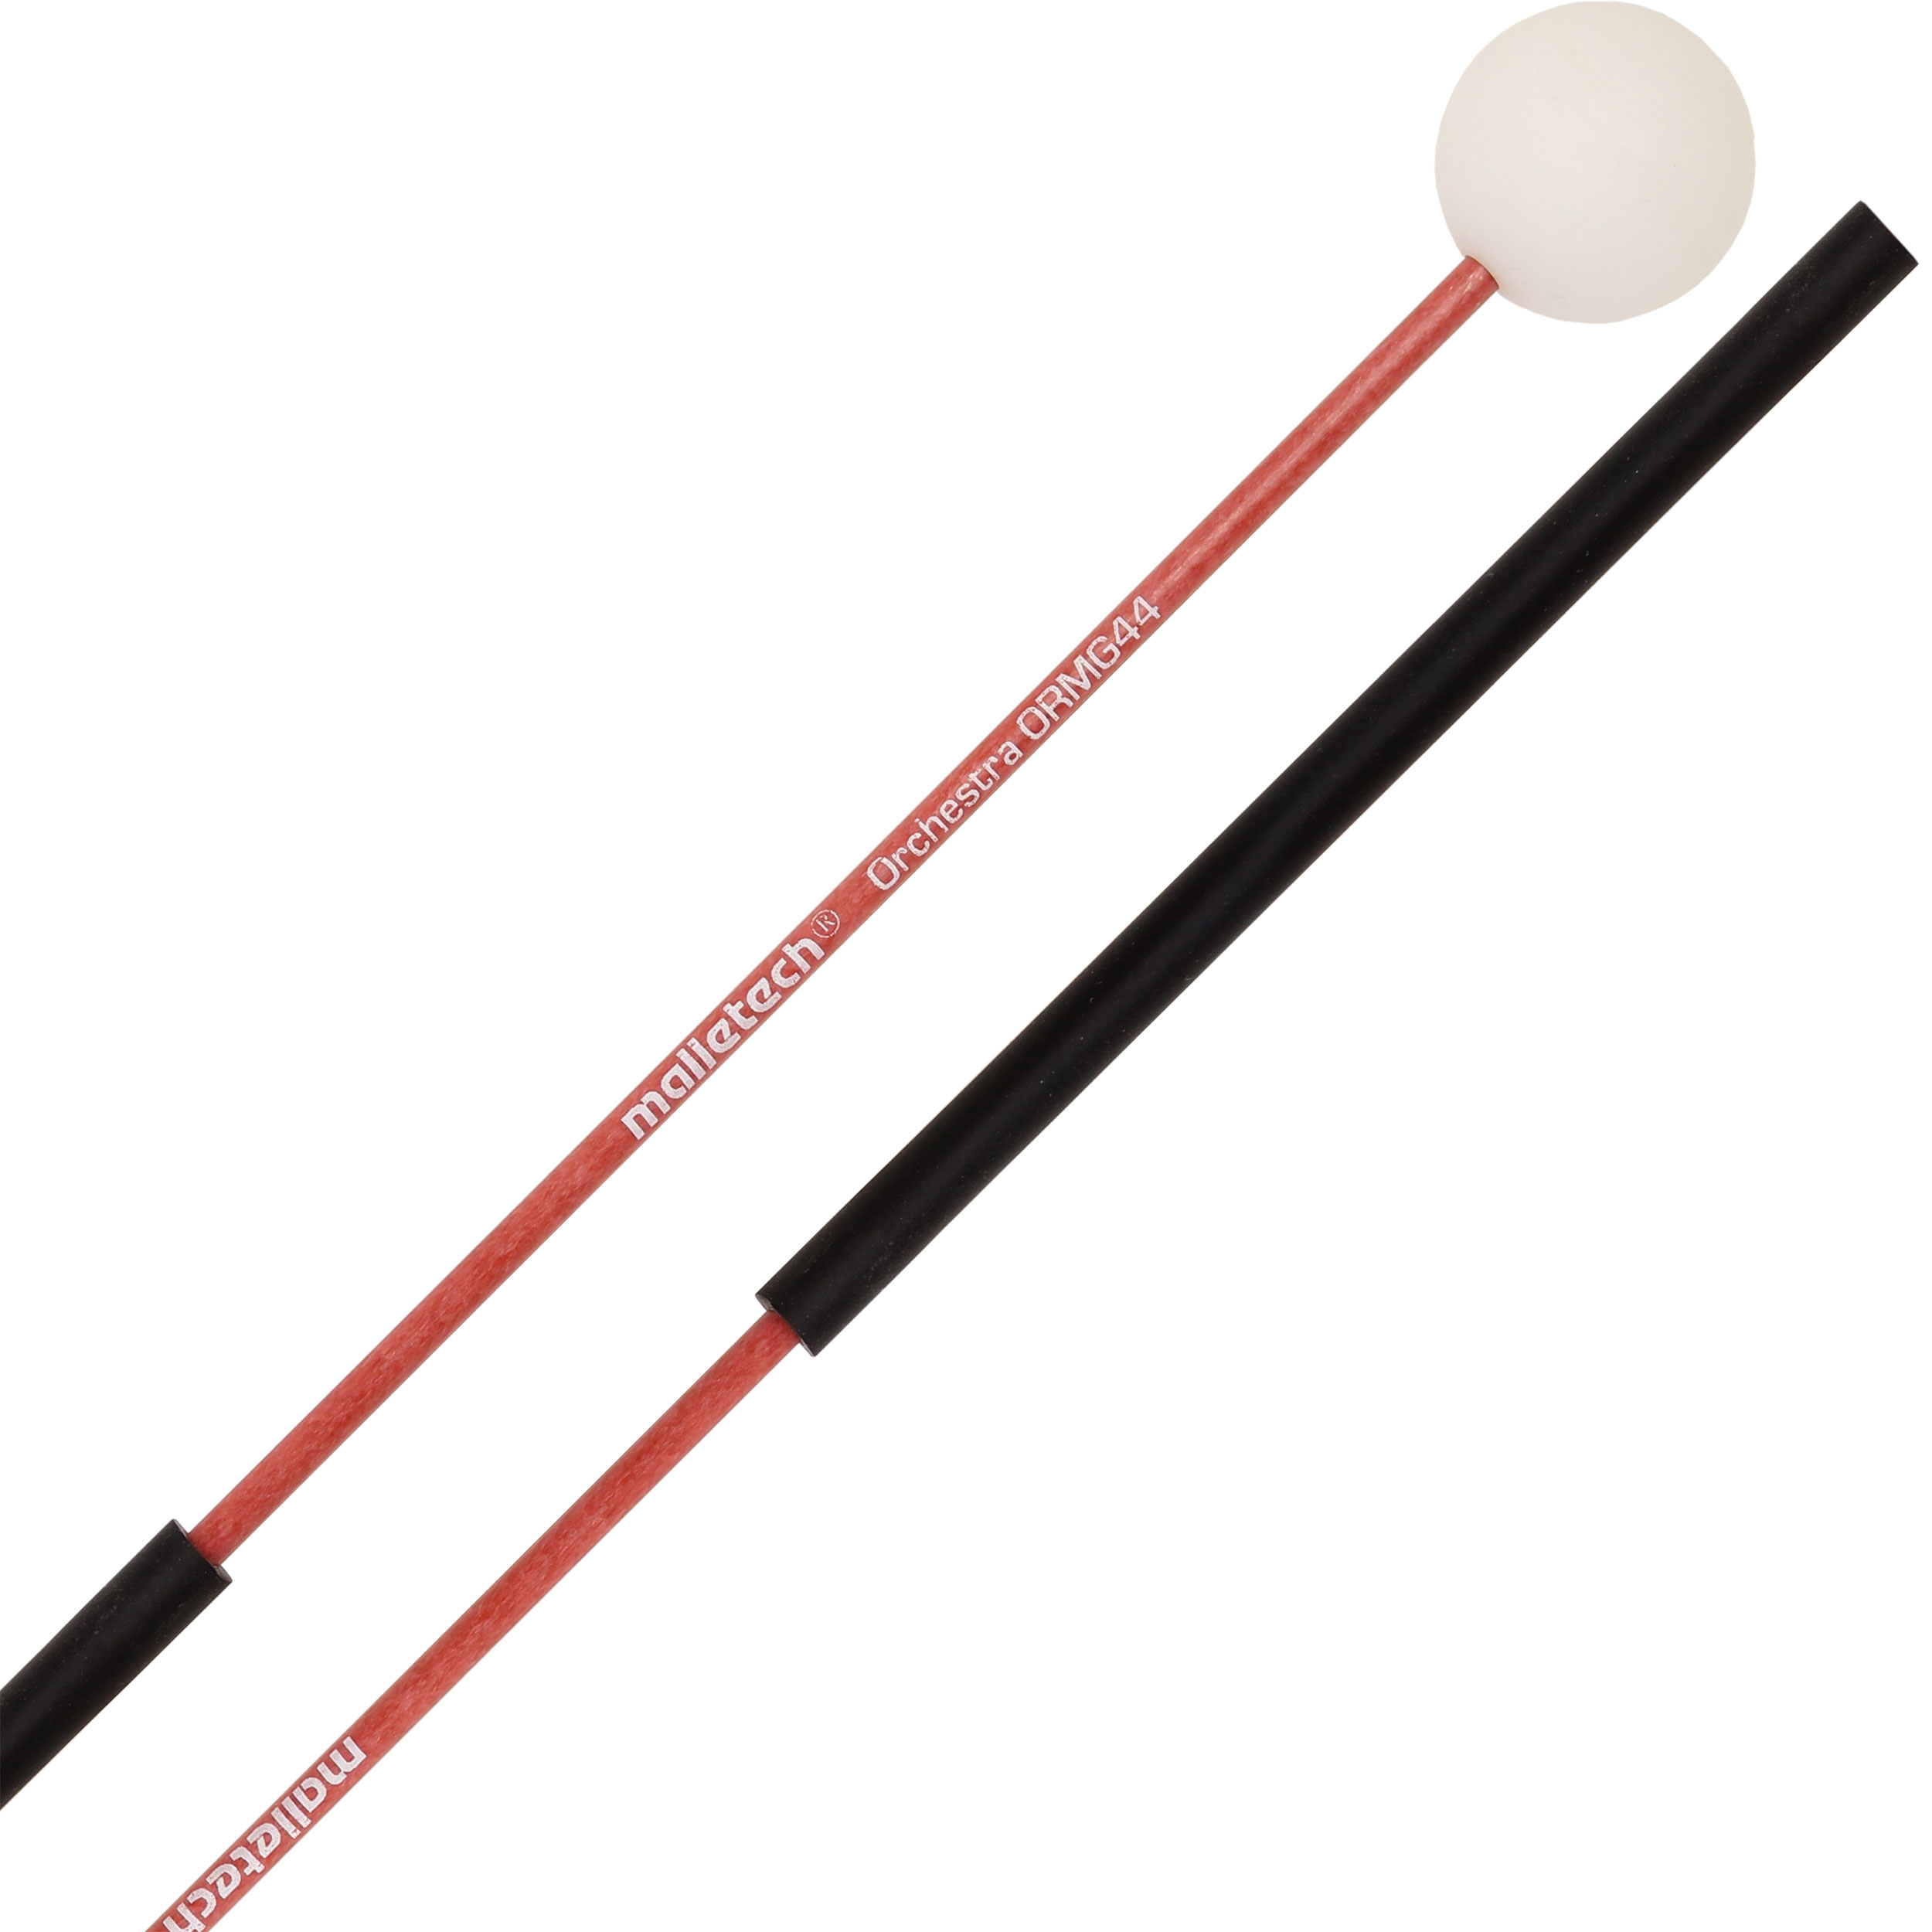 "Malletech Orchestral Series 7/8"" White Mini-Glock Mallets with Thin Fiberglass Shafts"